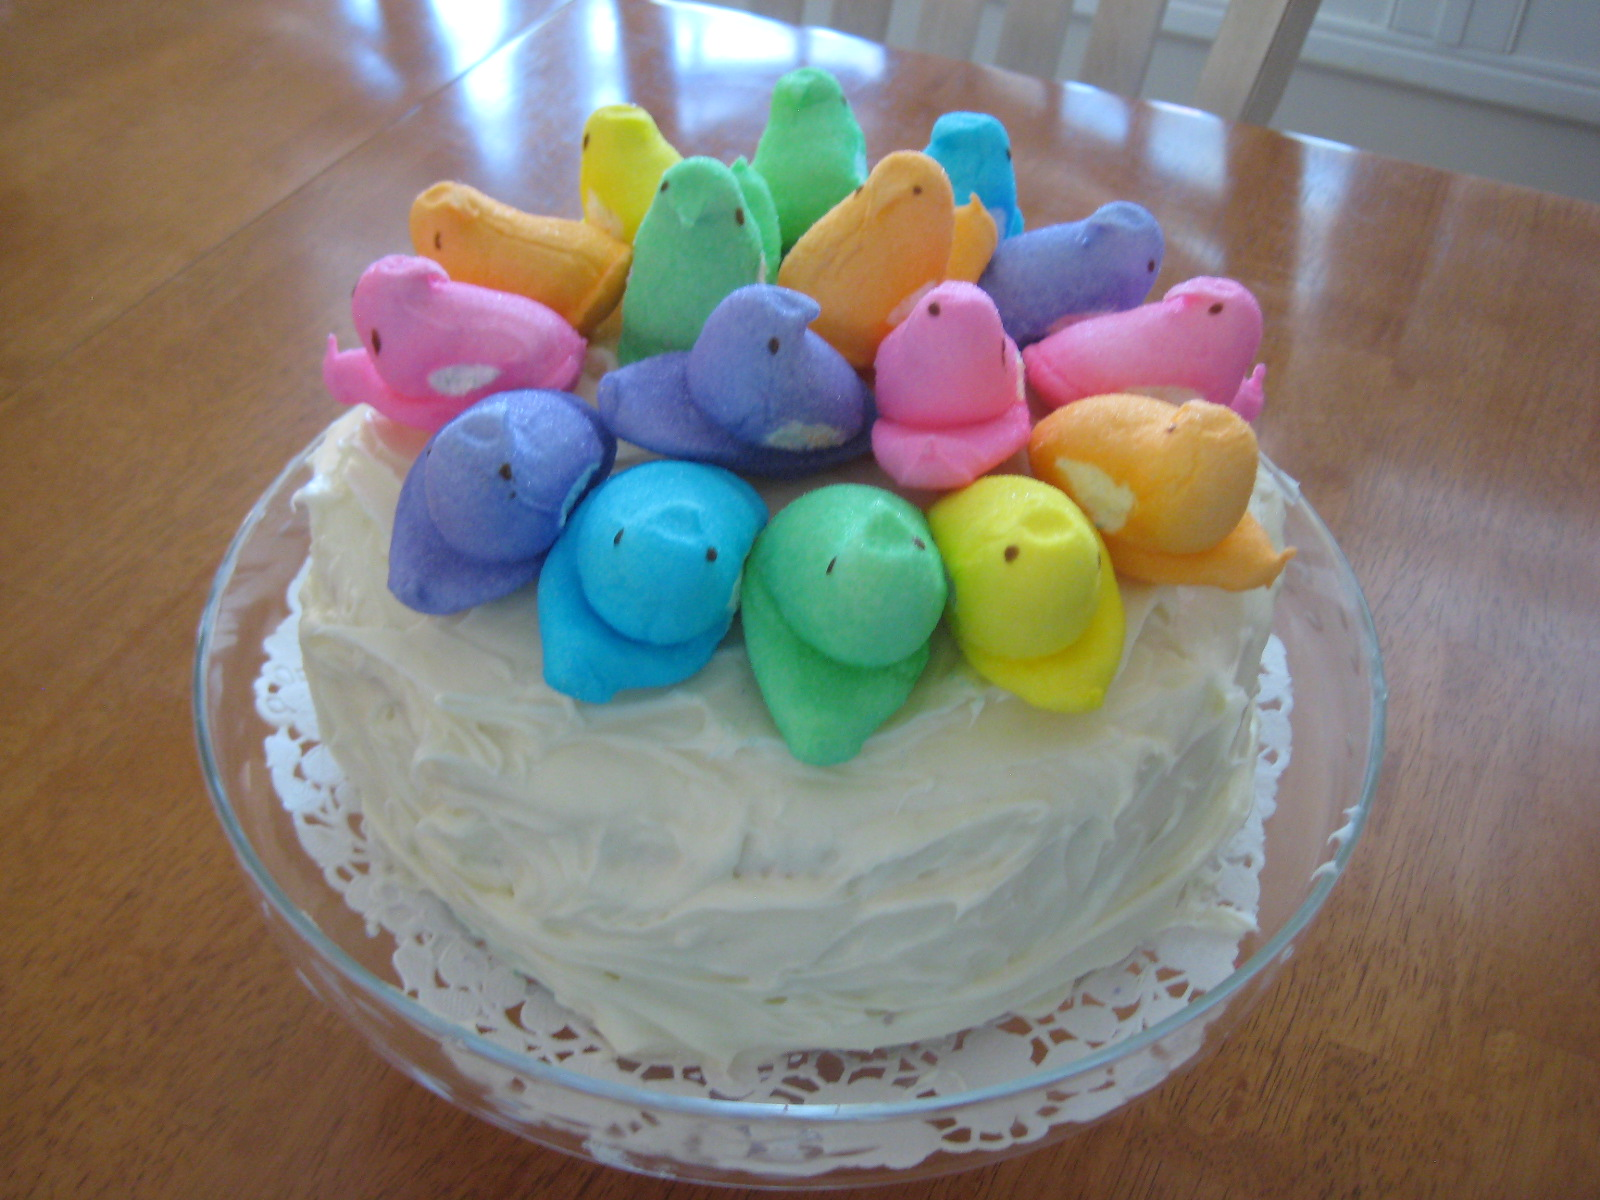 Easter Cake Decorating Ideas Pictures : Creative Party Ideas by Cheryl: Peeps Easter Cake Idea